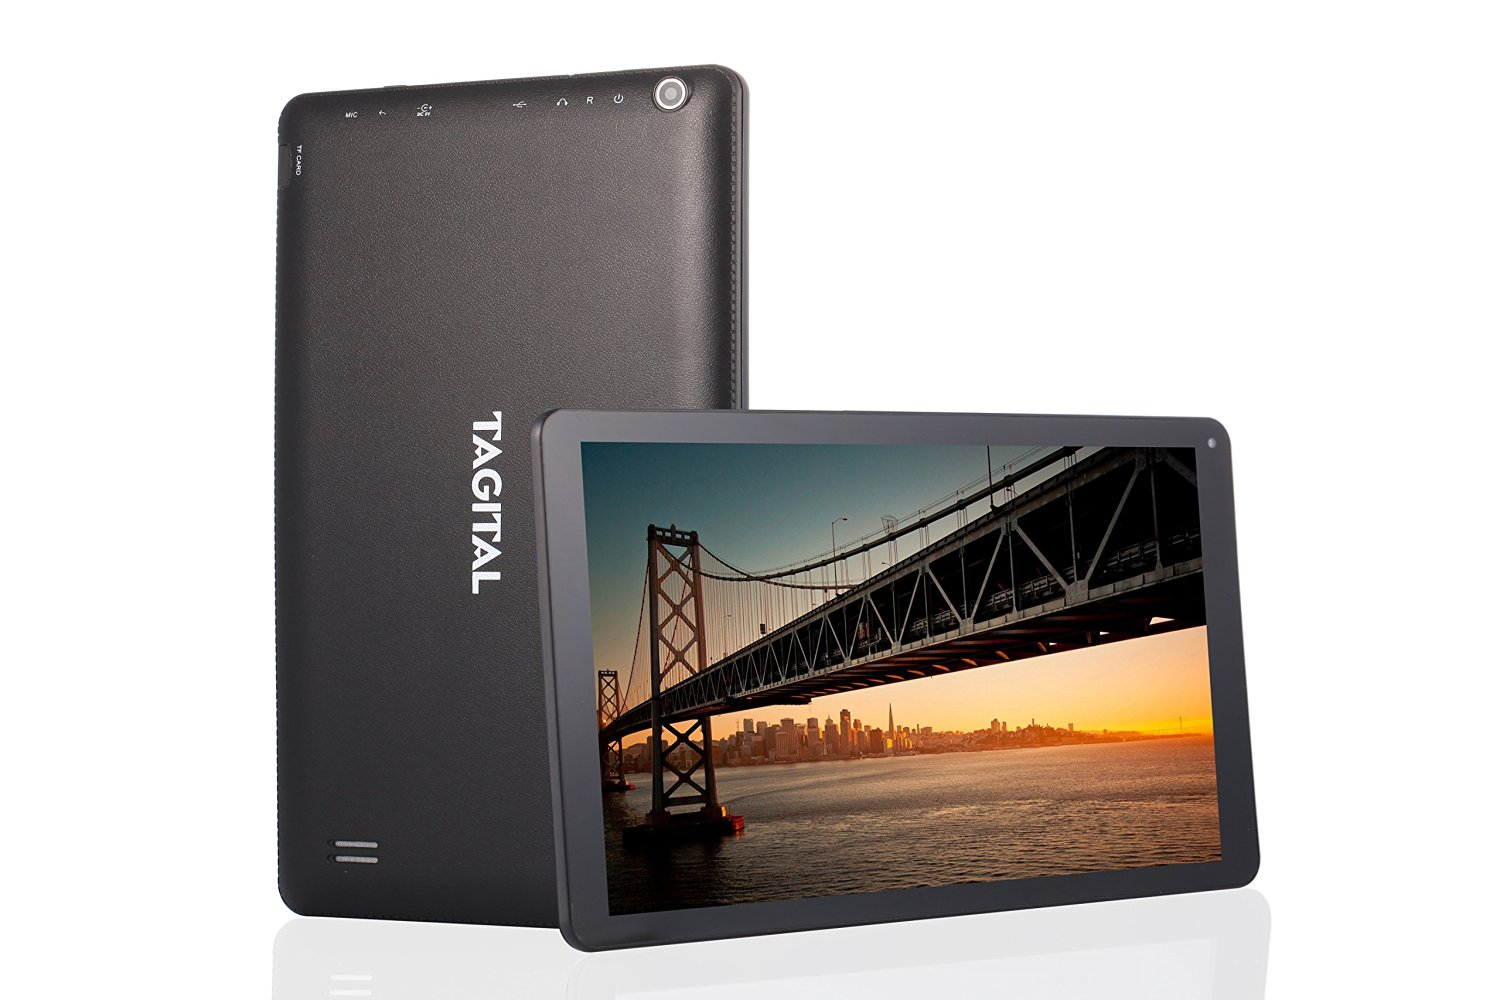 Tagital T10 Plus 10.1 Inch Octa Core Tablet PC Android 5.1 Lollipop 1GB RAM 16GB Nand Flash Bluetooth 4.0 HD Dual Camera HDMI Output Play Store Pre-installed 3D Game Supported Slim Design